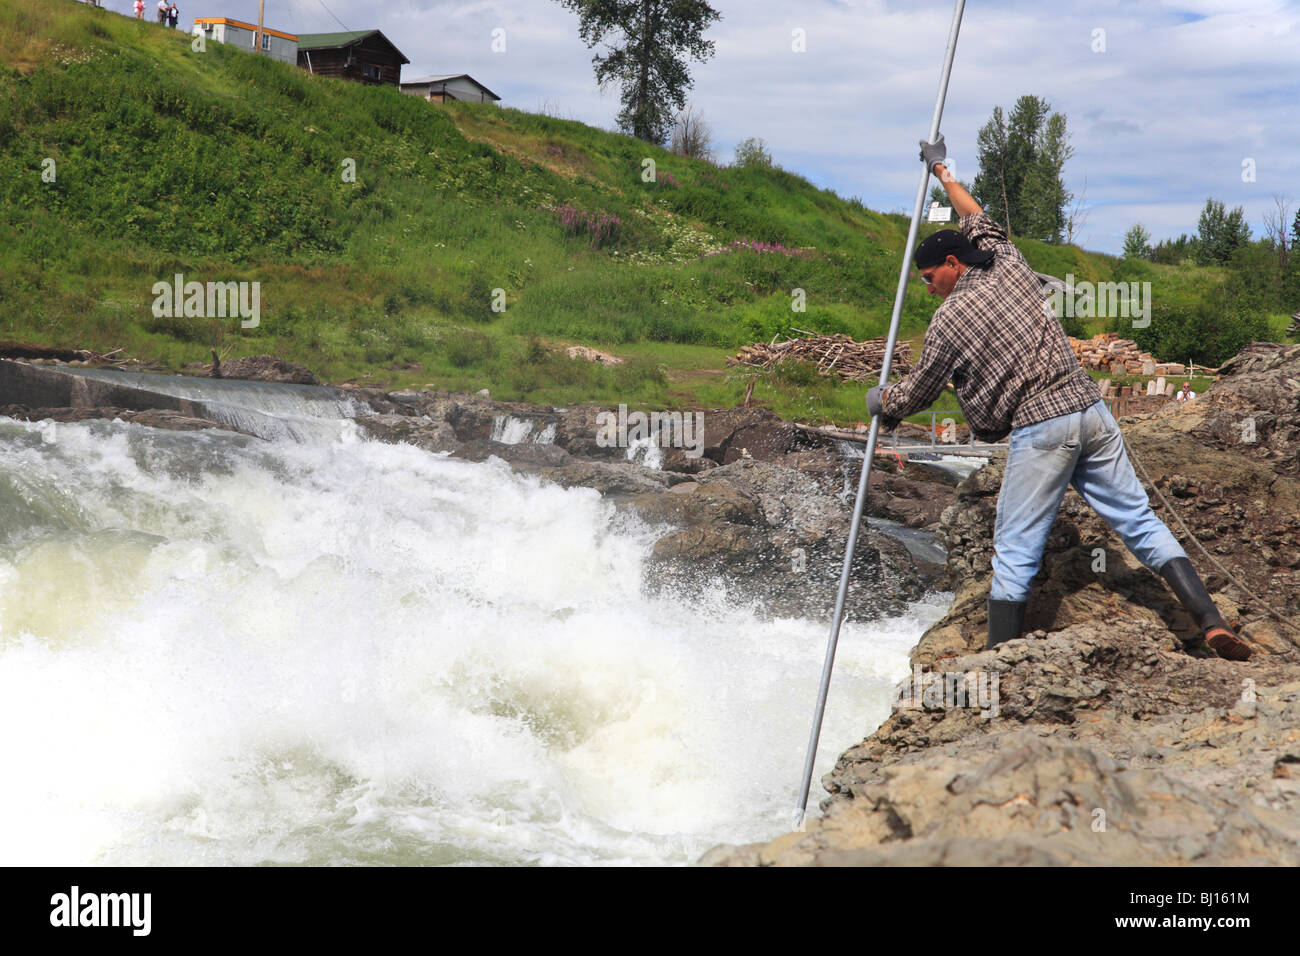 First Nations fisherman dipnetting for chinook salmon, Moricetown Falls, Bulkley river, British Columbia - Stock Image